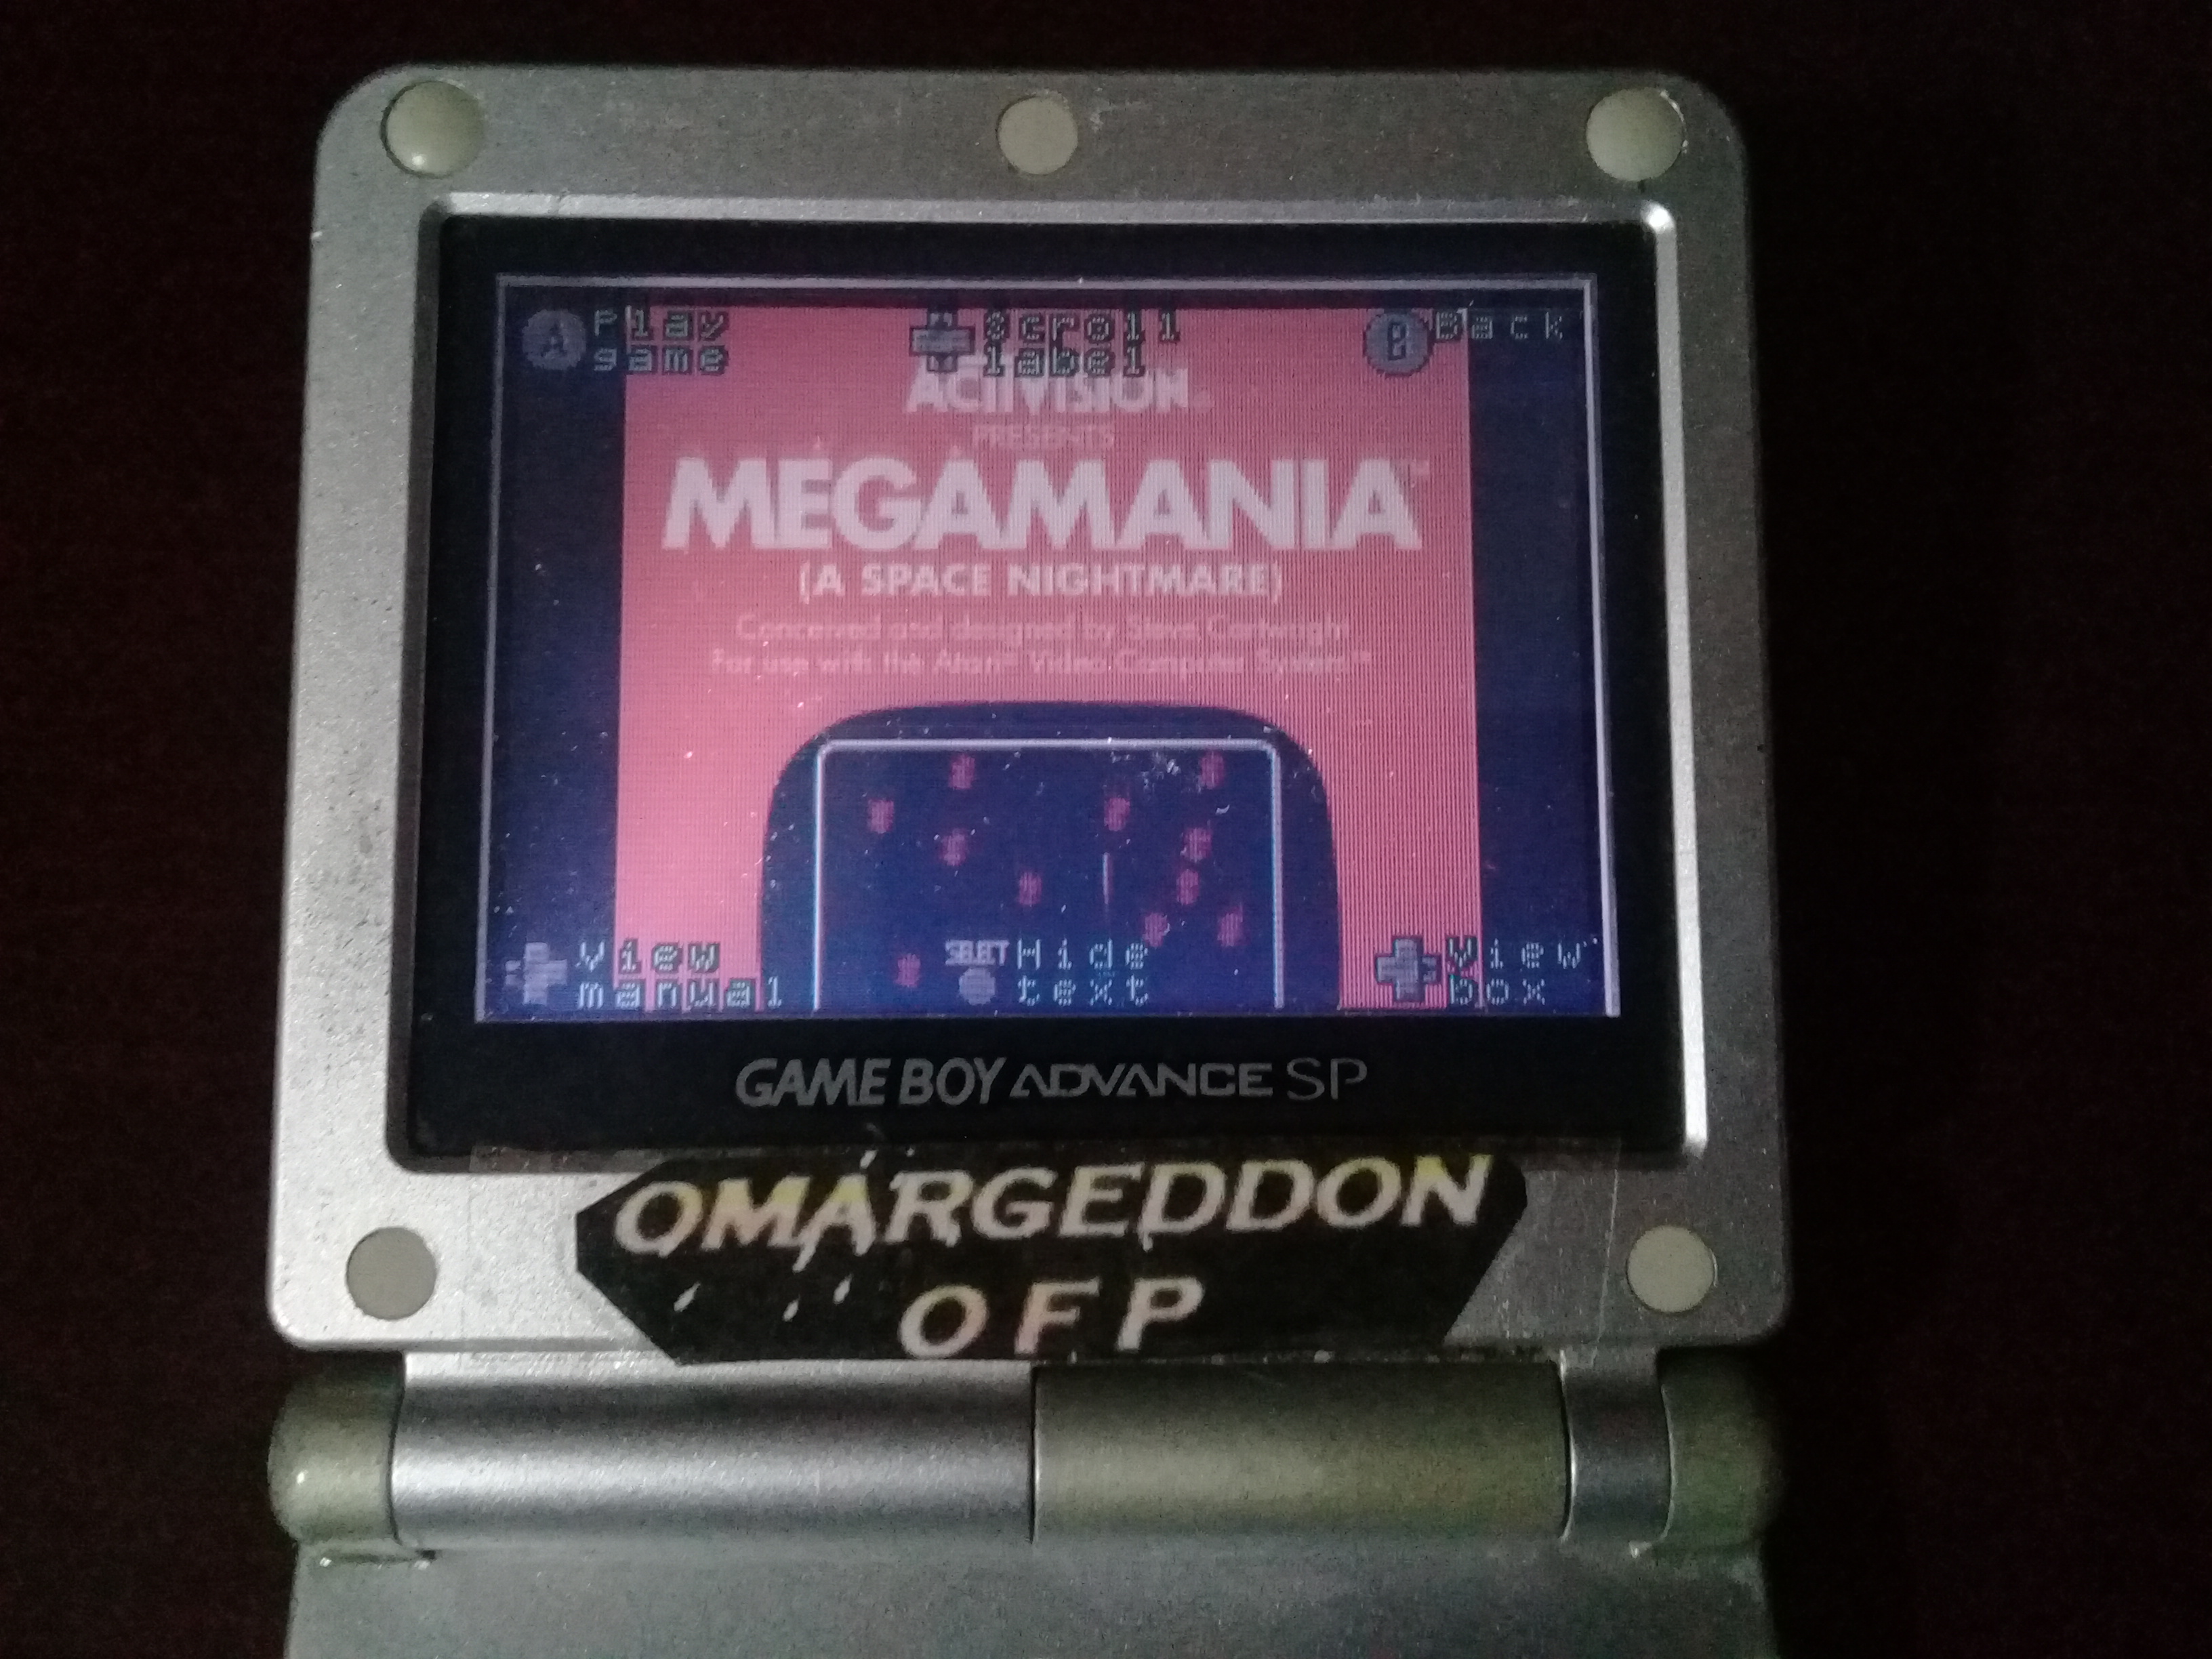 omargeddon: Activision Anthology: Megamania [Game 1B] (GBA) 16,300 points on 2019-10-13 10:25:16